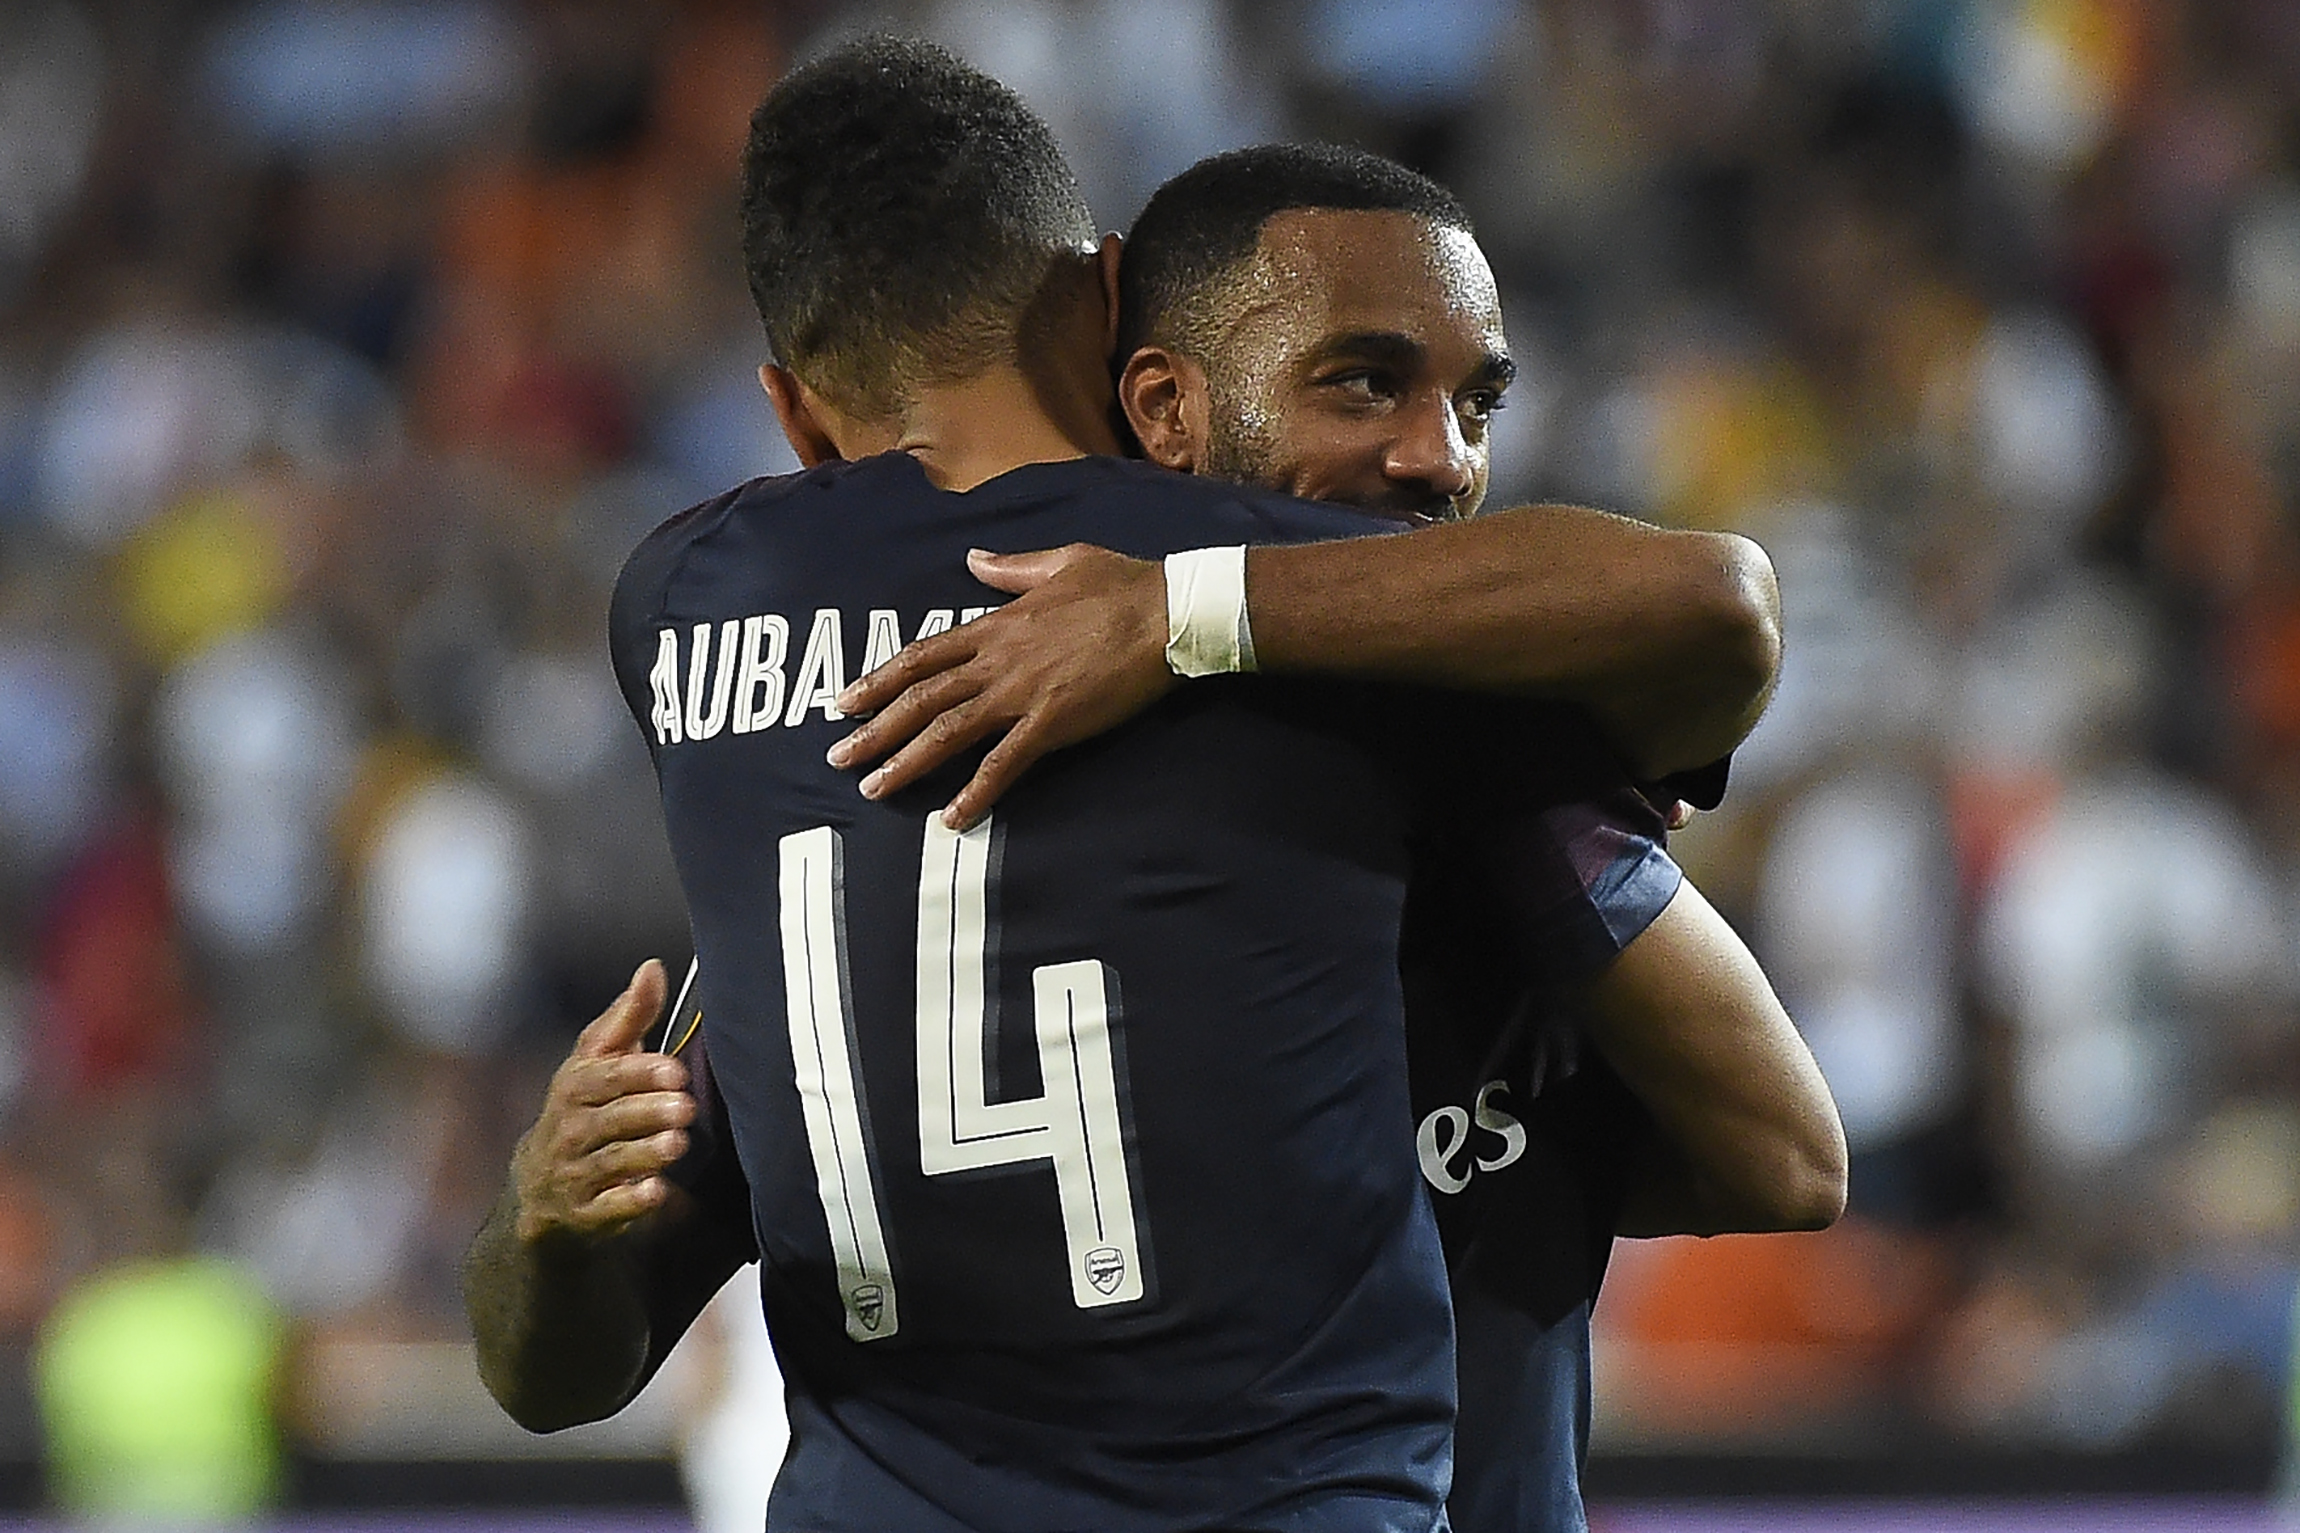 Arsenal's Gabonese striker Pierre-Emerick Aubameyang celebrates with Arsenal's French striker Alexandre Lacazette (back) at the end of the UEFA Europa League semi-final second leg football match between Valencia CF and Arsenal FC at the Mestalla stadium in Valencia on May 9, 2019.